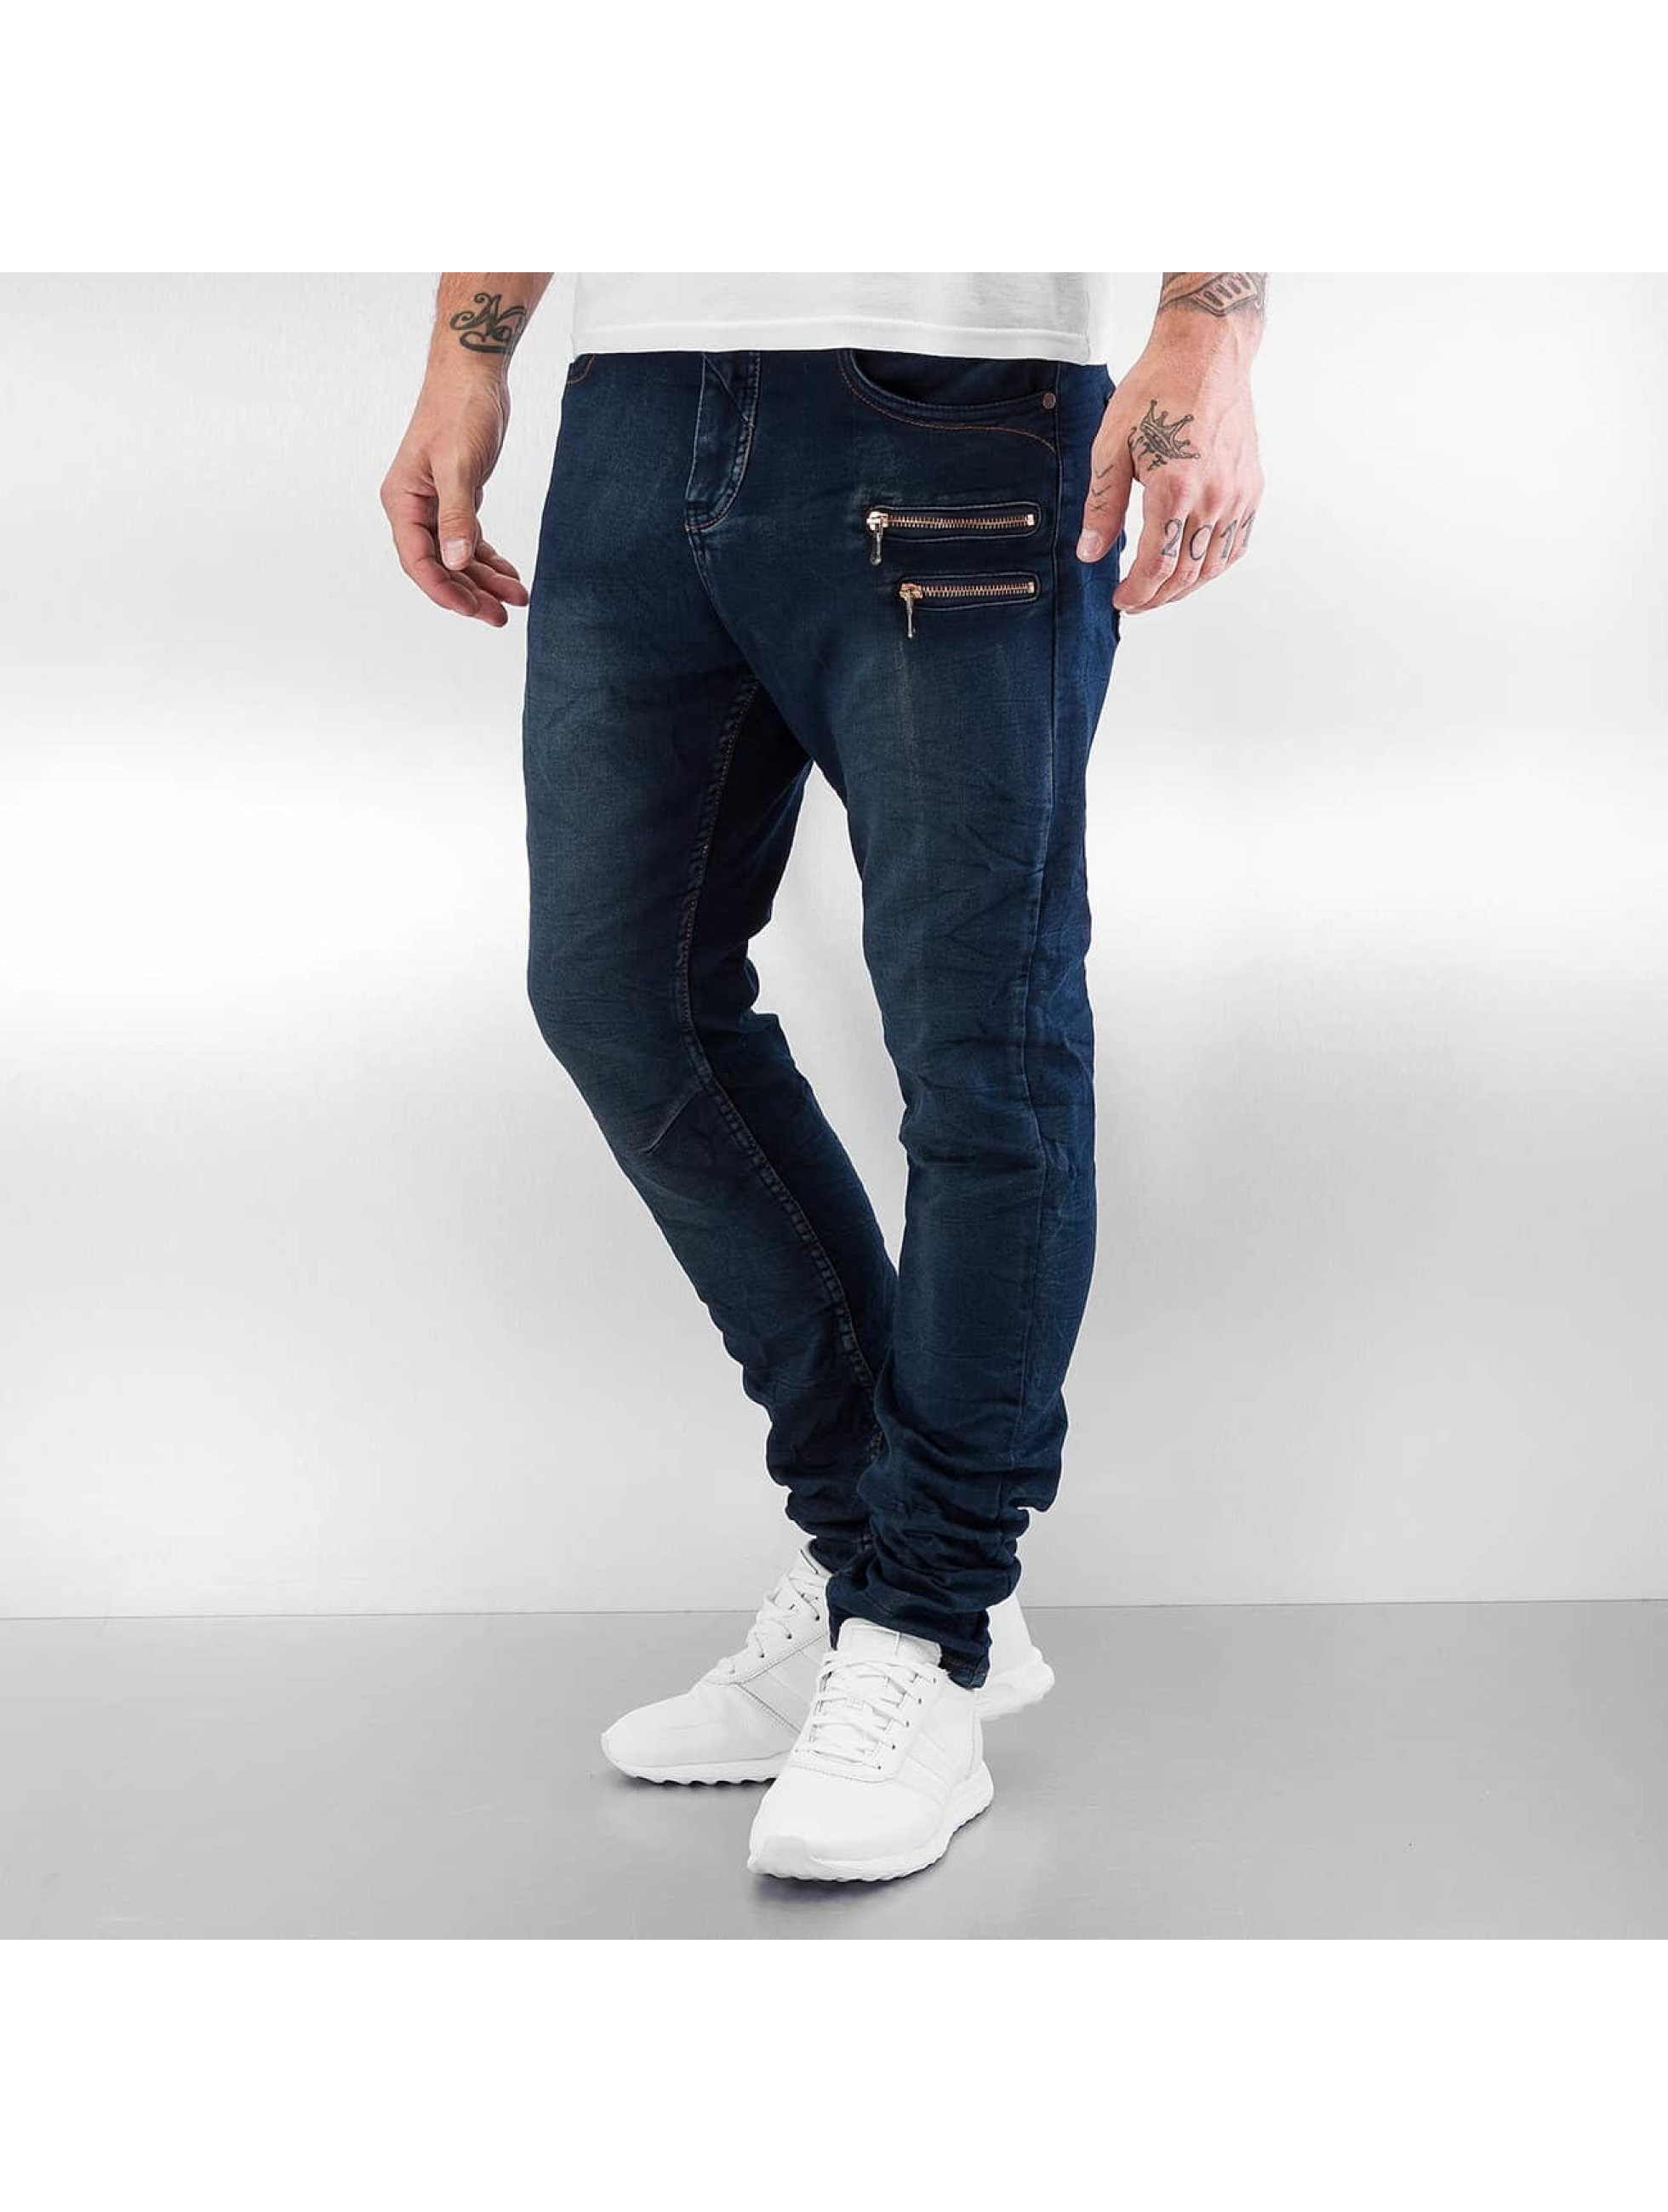 Authentic Style Männer Skinny Jeans Jogger in blau Sale Angebote Recklinghausen